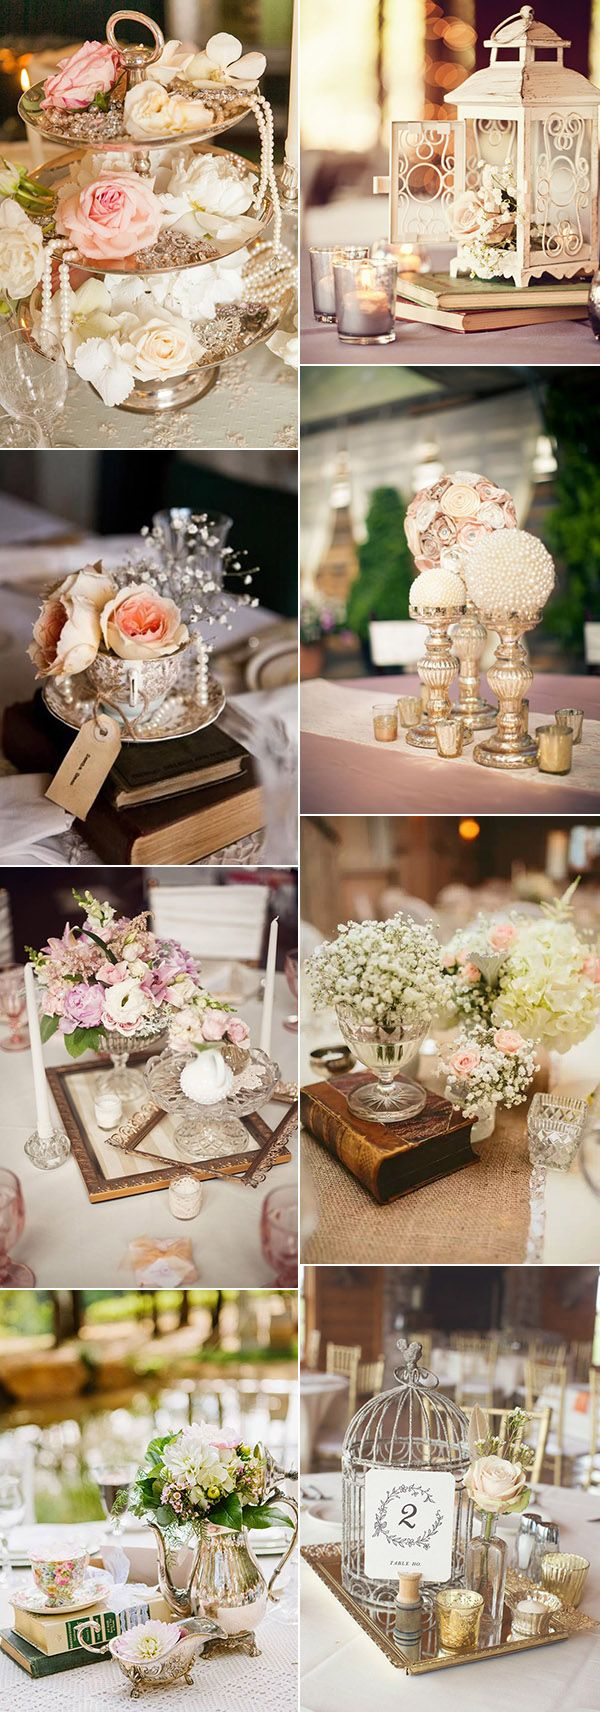 20 Inspiring Vintage Wedding Centerpieces Ideas | Vintage wedding ...